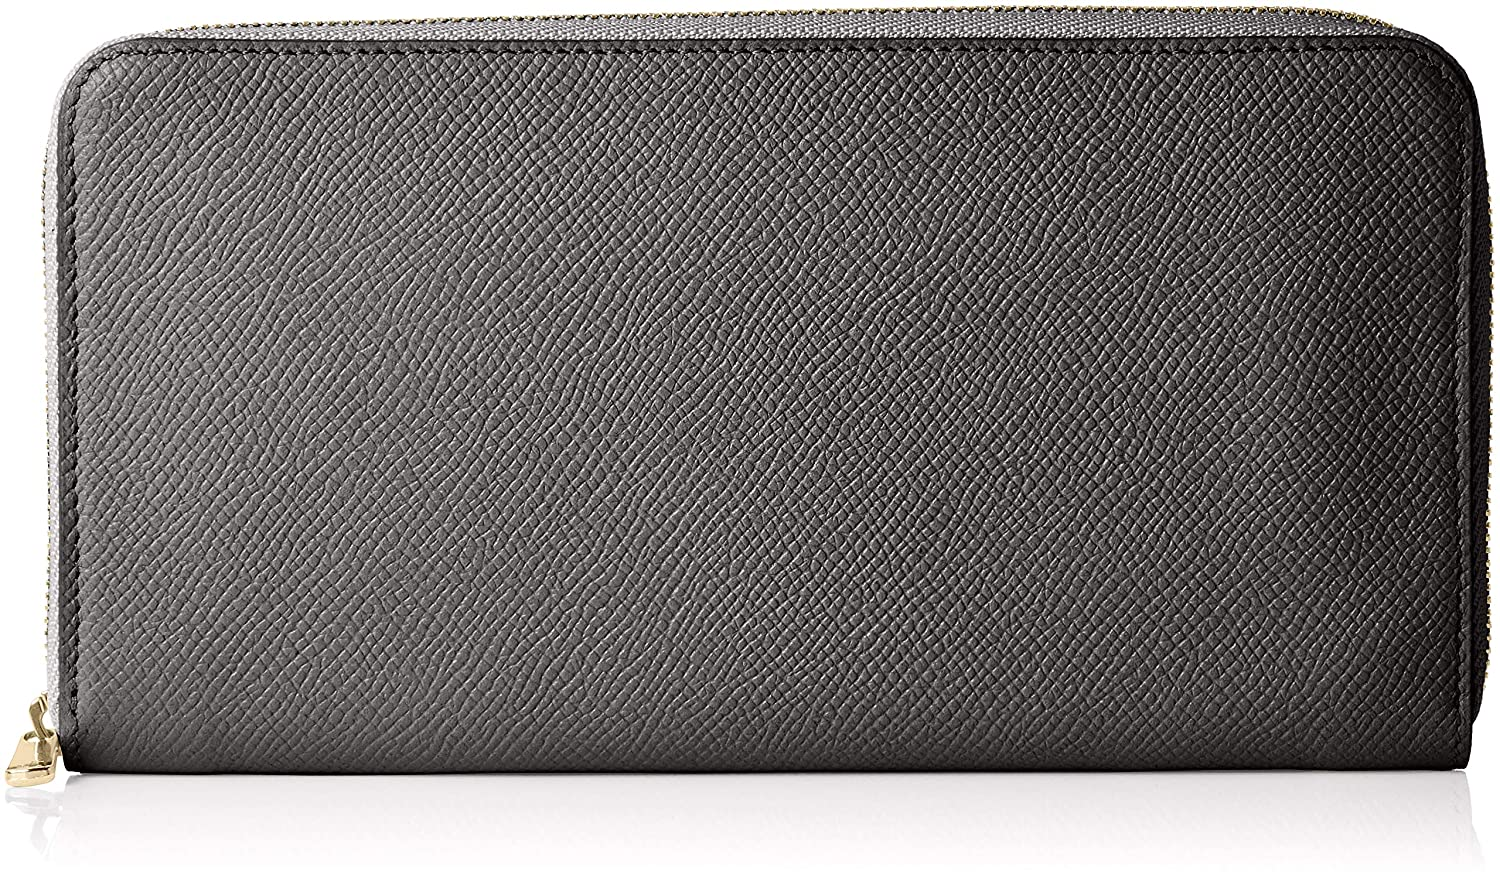 [ファーロ] LONG ZIP WALLET BOLERO FRO401228 B07J2RGQTN CARBON BLACK